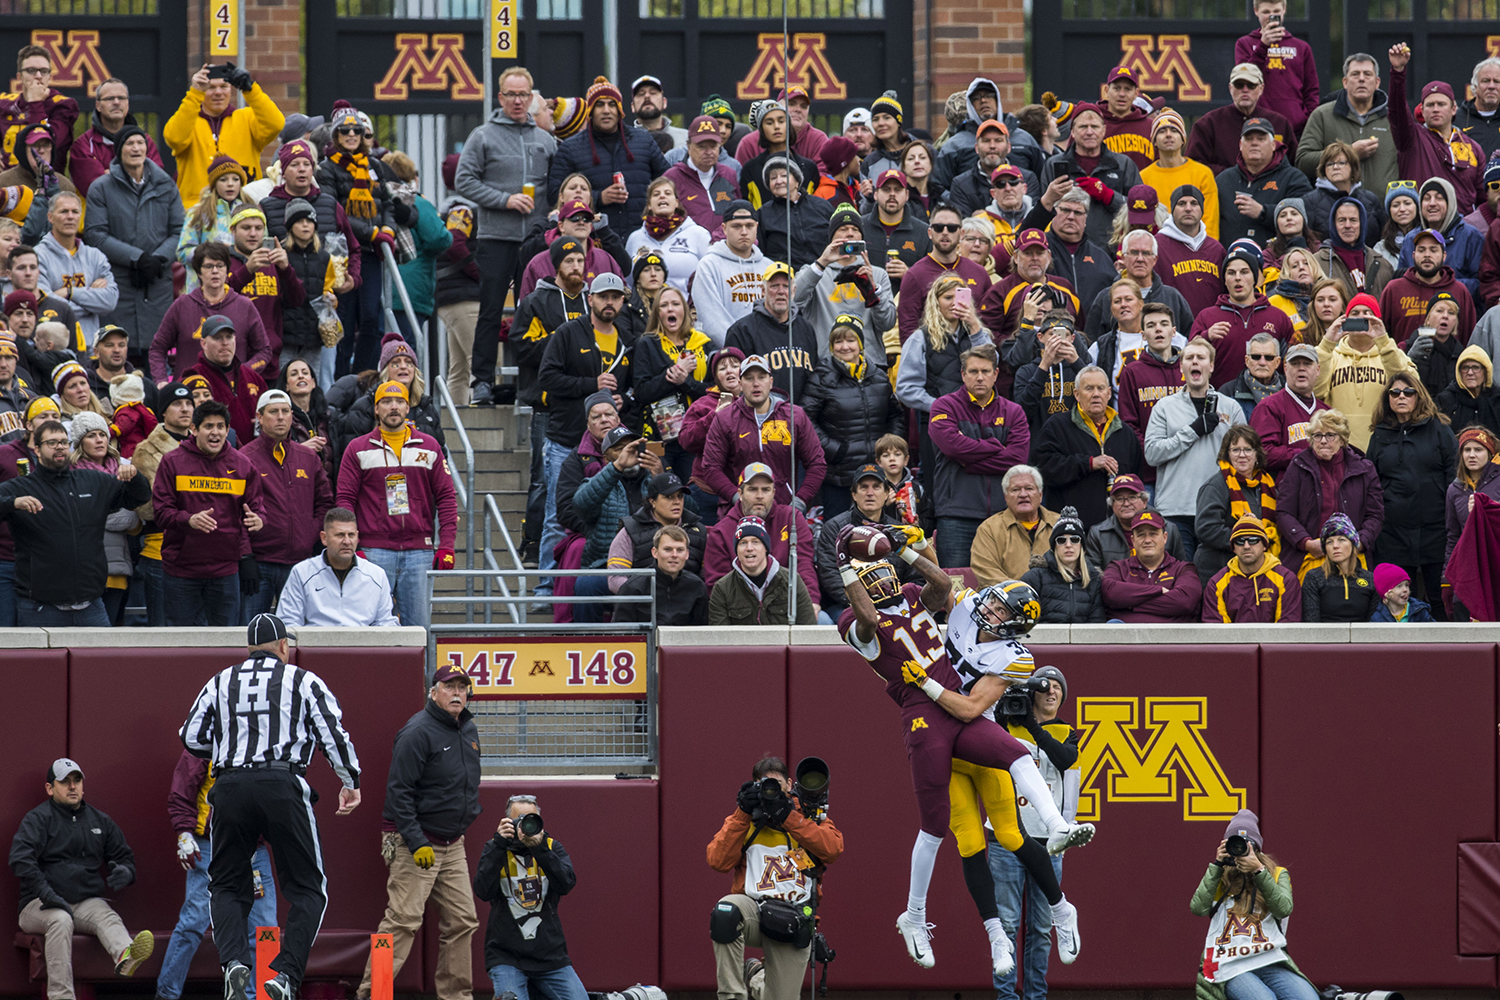 Minnesota%27s+Rashod+Bateman+catches+a+pass+during+the+Iowa%2FMinnesota+football+game+at+TCF+Bank+Stadium+in+Minneapolis+on+Saturday%2C+October+6%2C+2018.+The+Hawkeyes+defeated+the+Golden+Gophers%2C+48-31.+